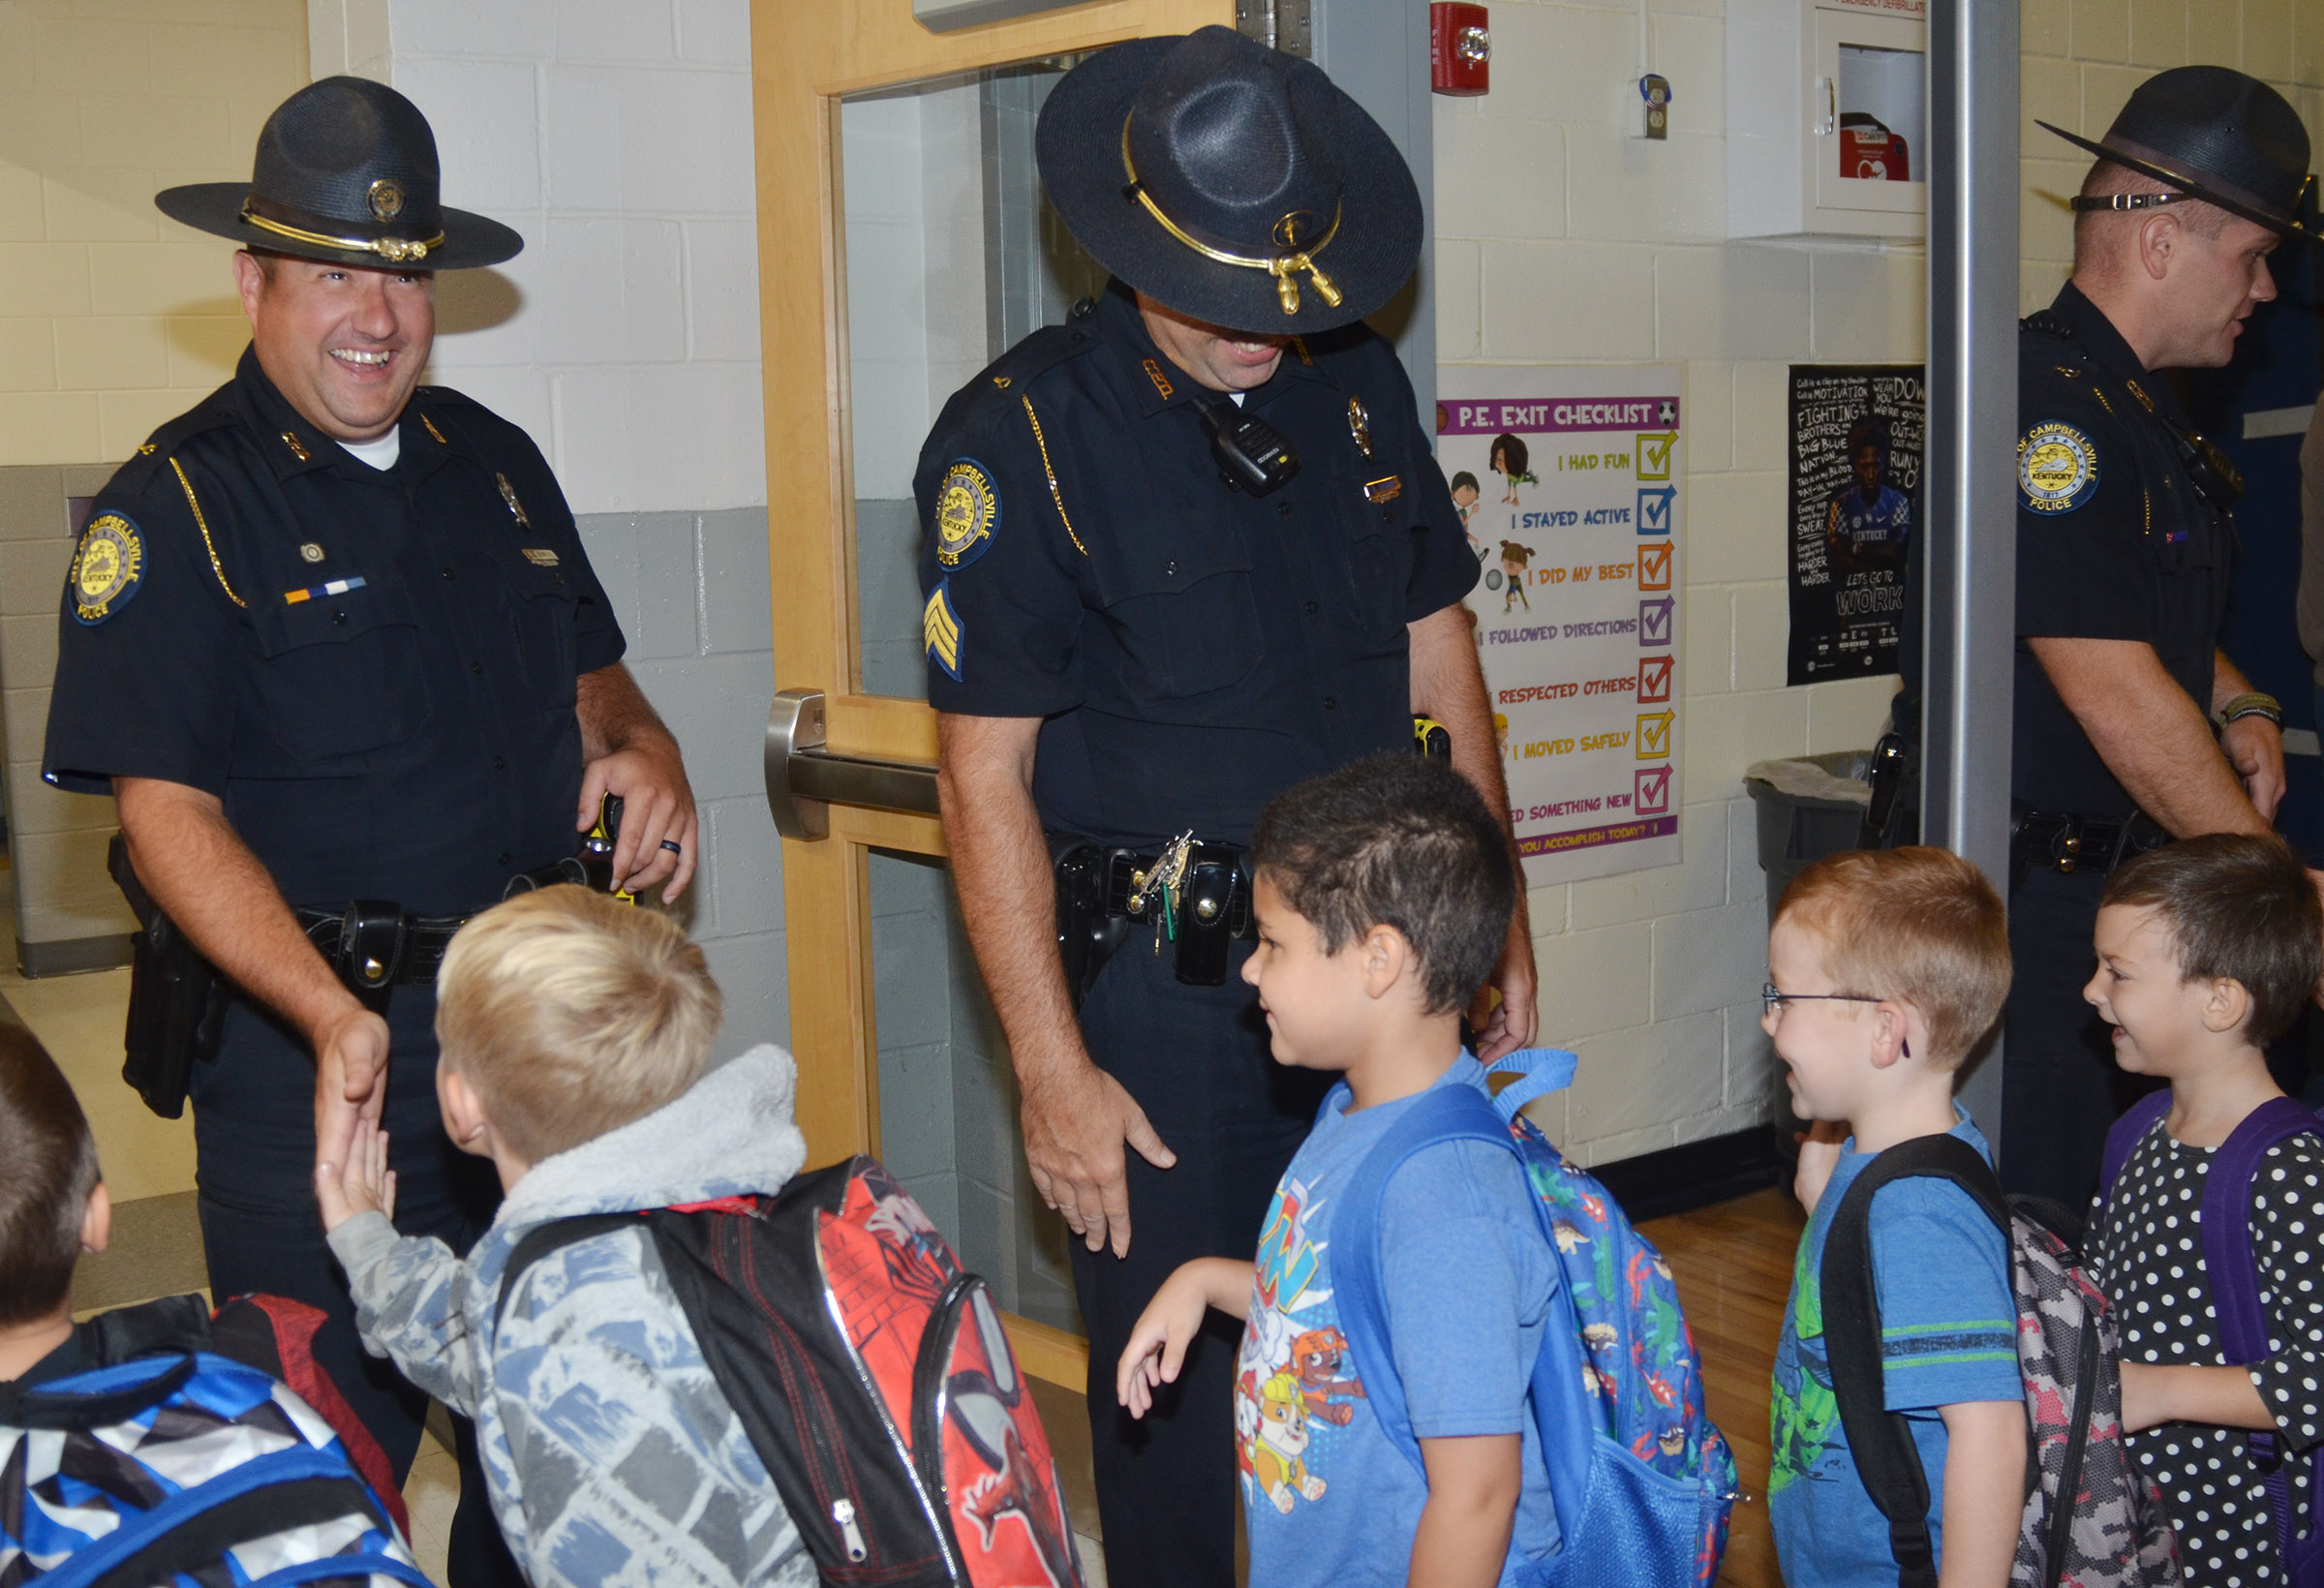 From left, Campbellsville Police officers Ryan Jewell, David Tucker and Jake Hedgespeth greet CES students as they walk to their classrooms.